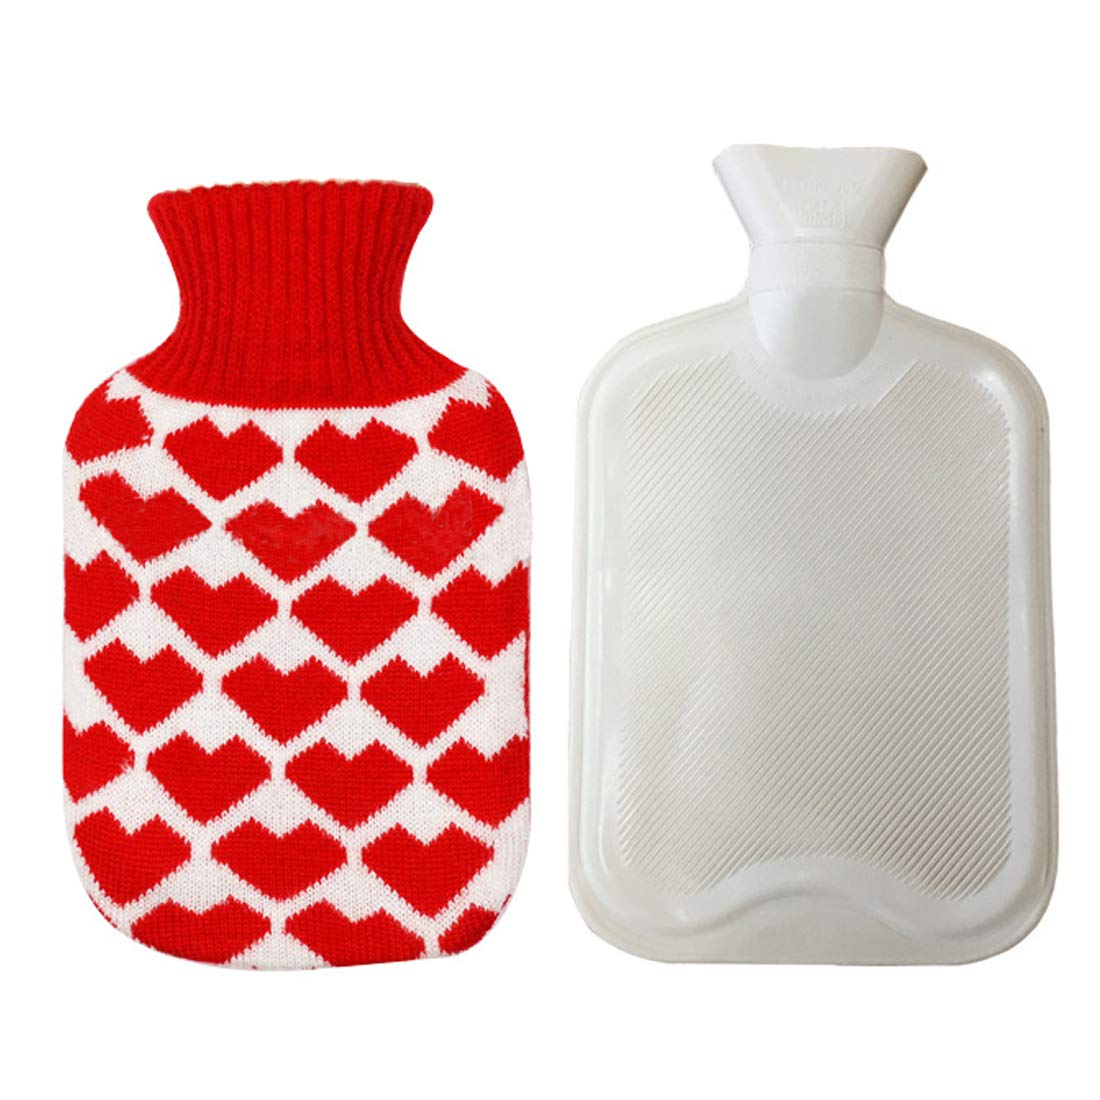 Hot Water Bag Cute Hot Water Bottle with Cover 0.5l Removable Portable Hot Water Bottle for Kids Men Women Best Christmas Birthday Mothers Day and Valentines Day Gift Mini Hot Water Bottle